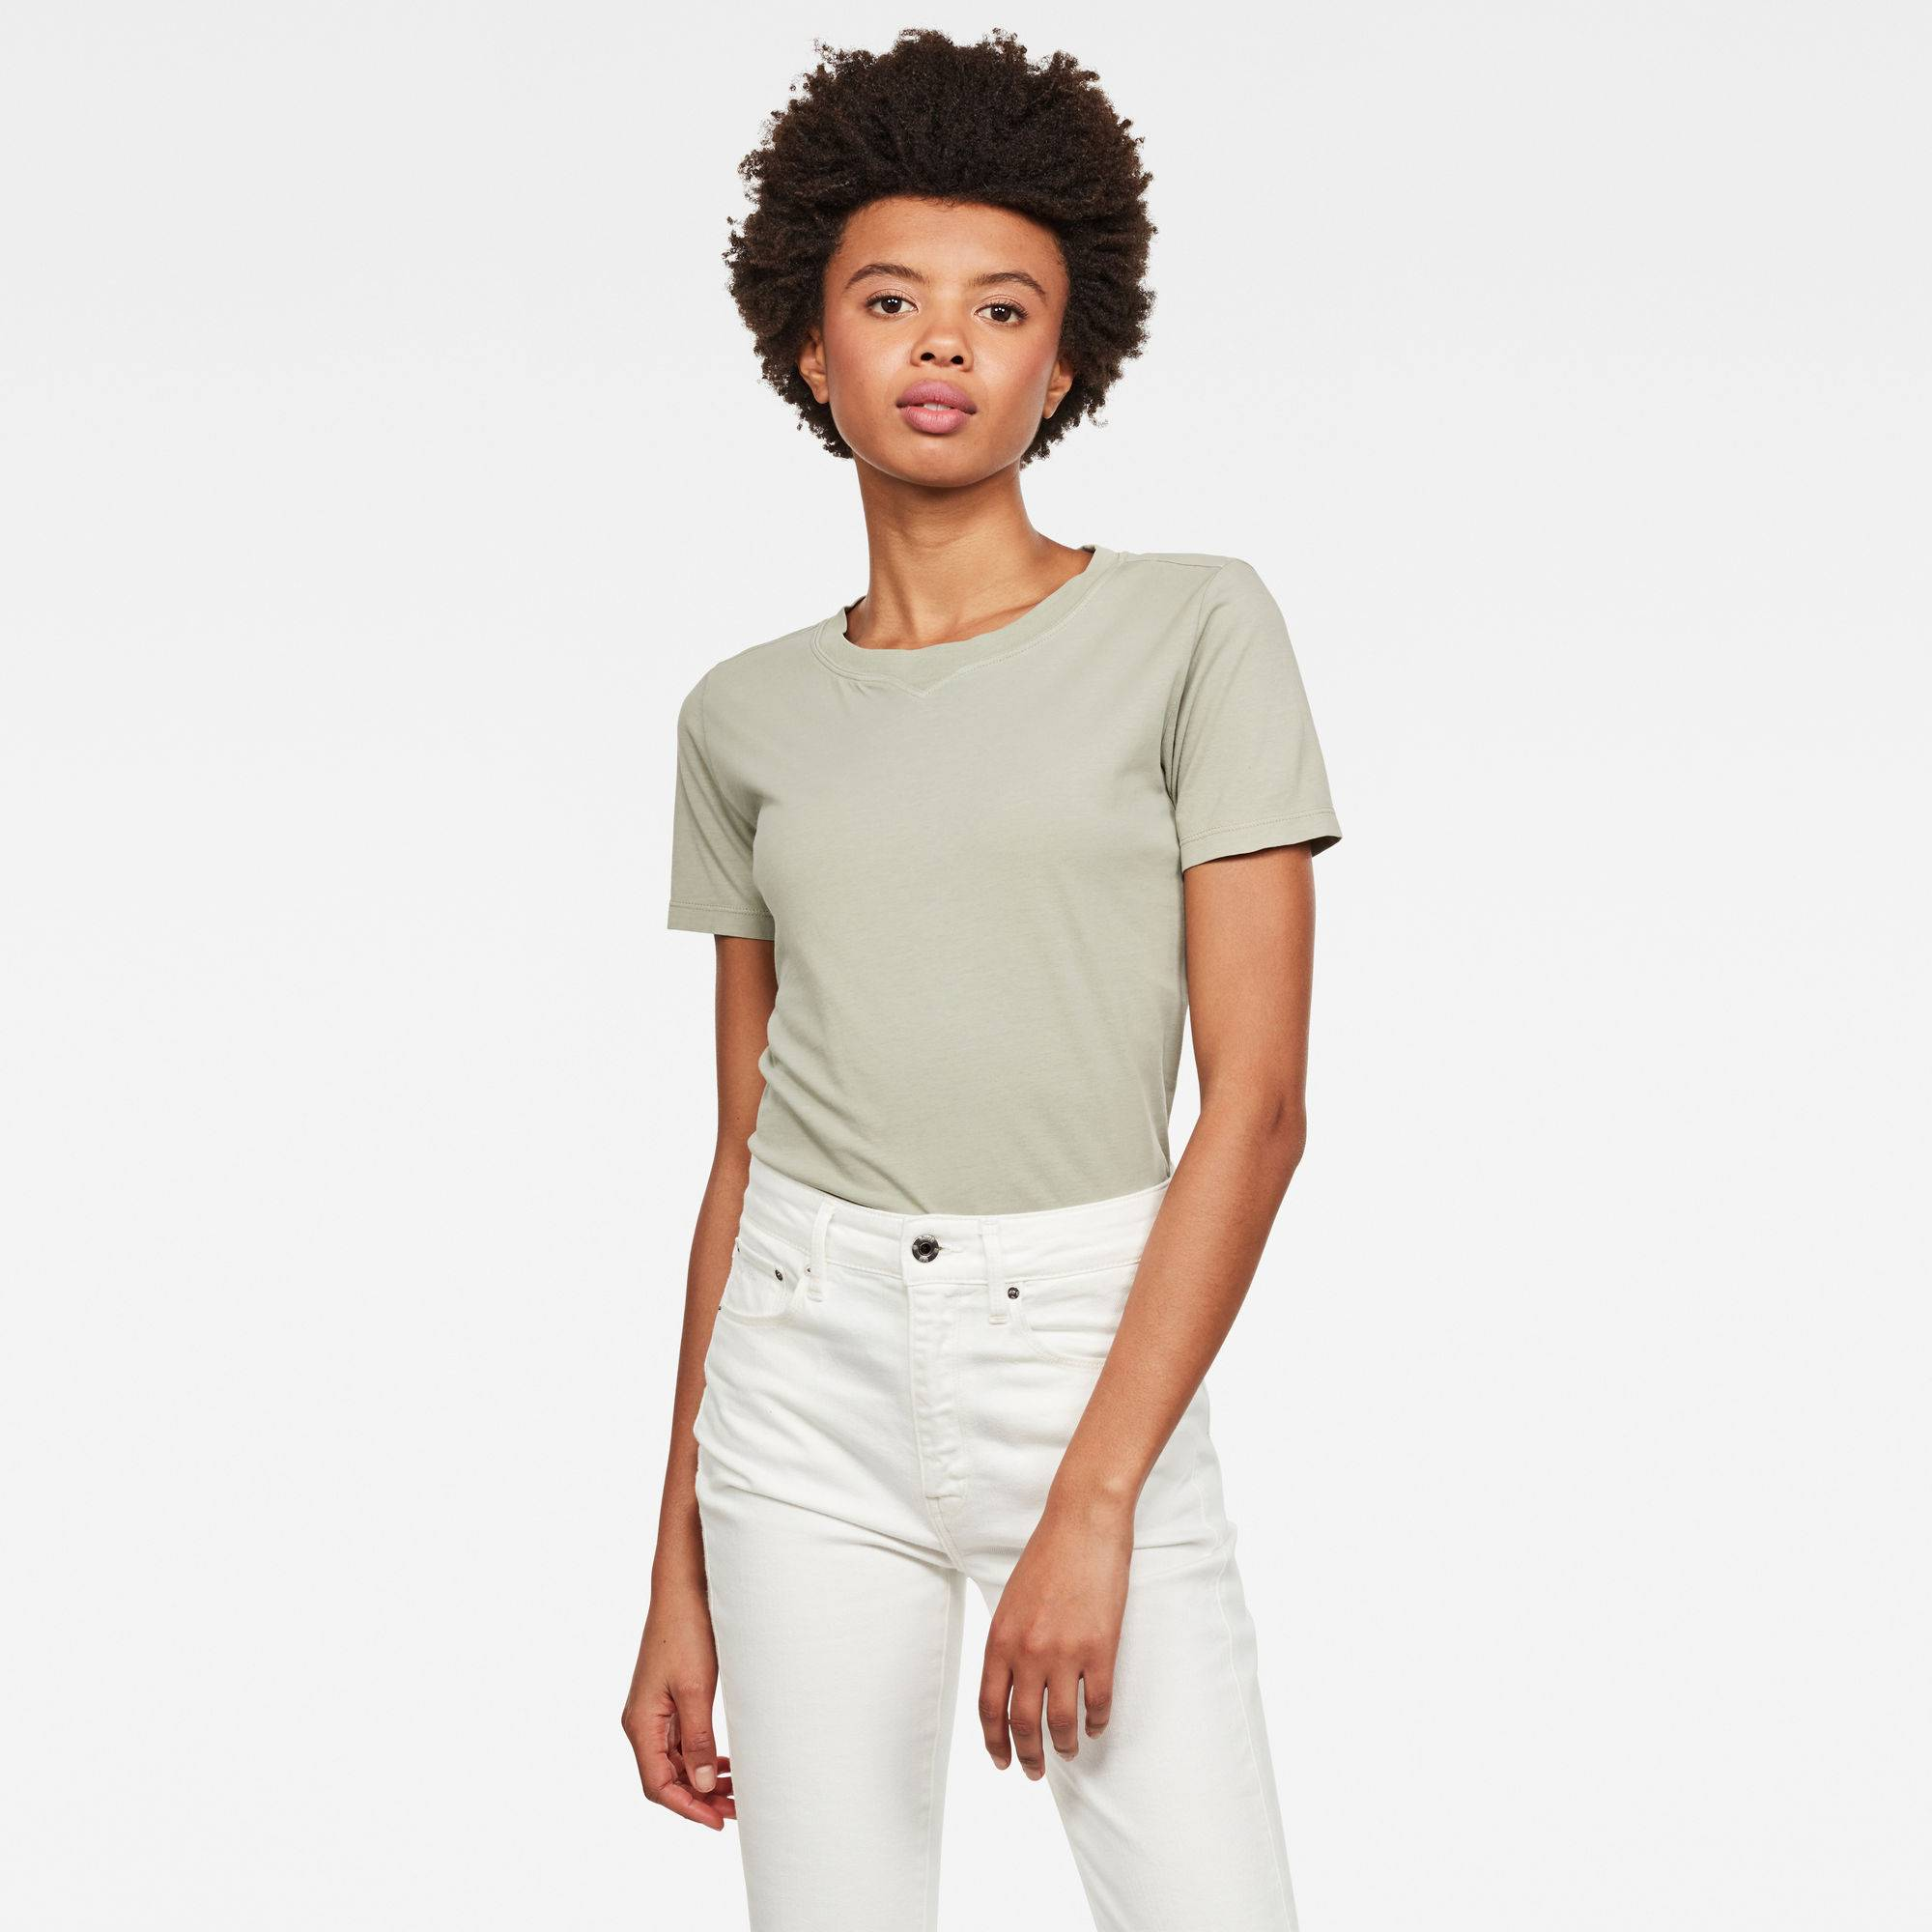 G-star RAW Femmes Haut Mysid Recycle Dye Optic Slim Vert